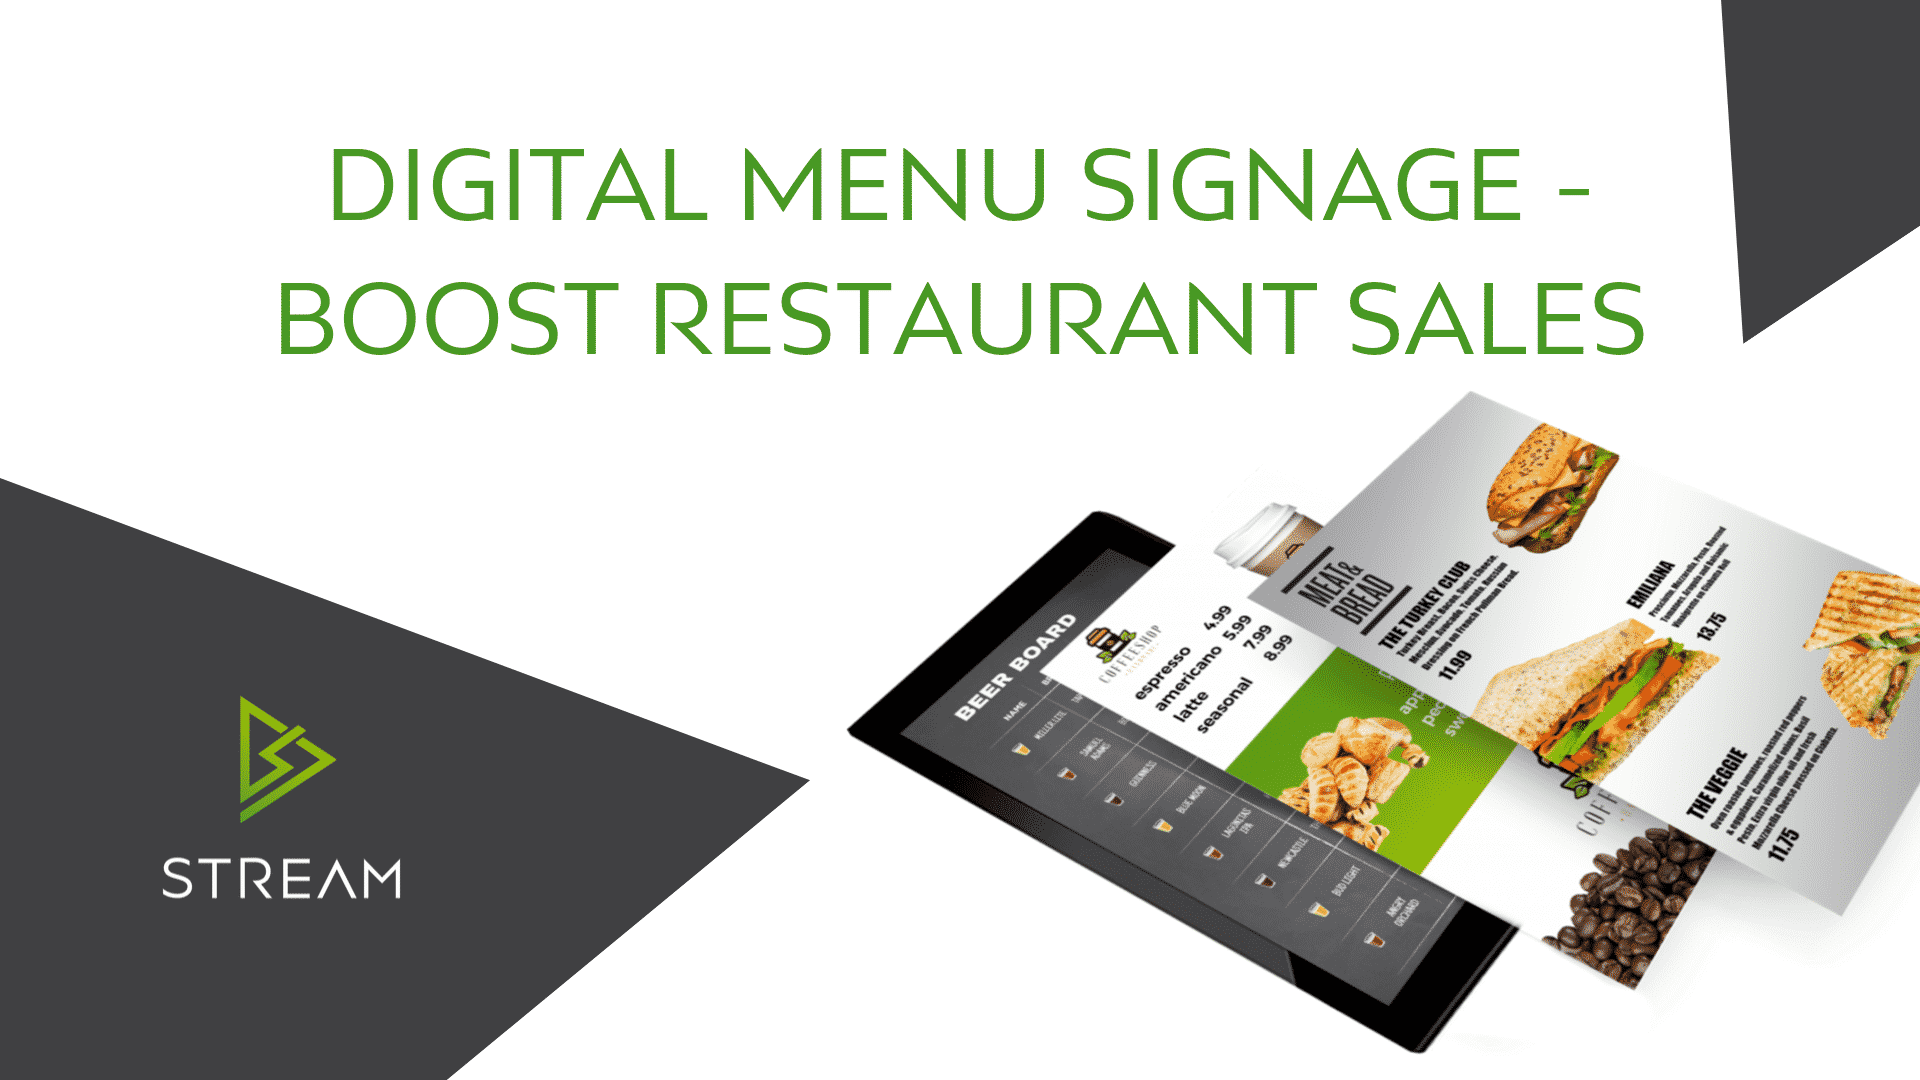 Digital Menu Signage - How to Boost Restaurant Sales